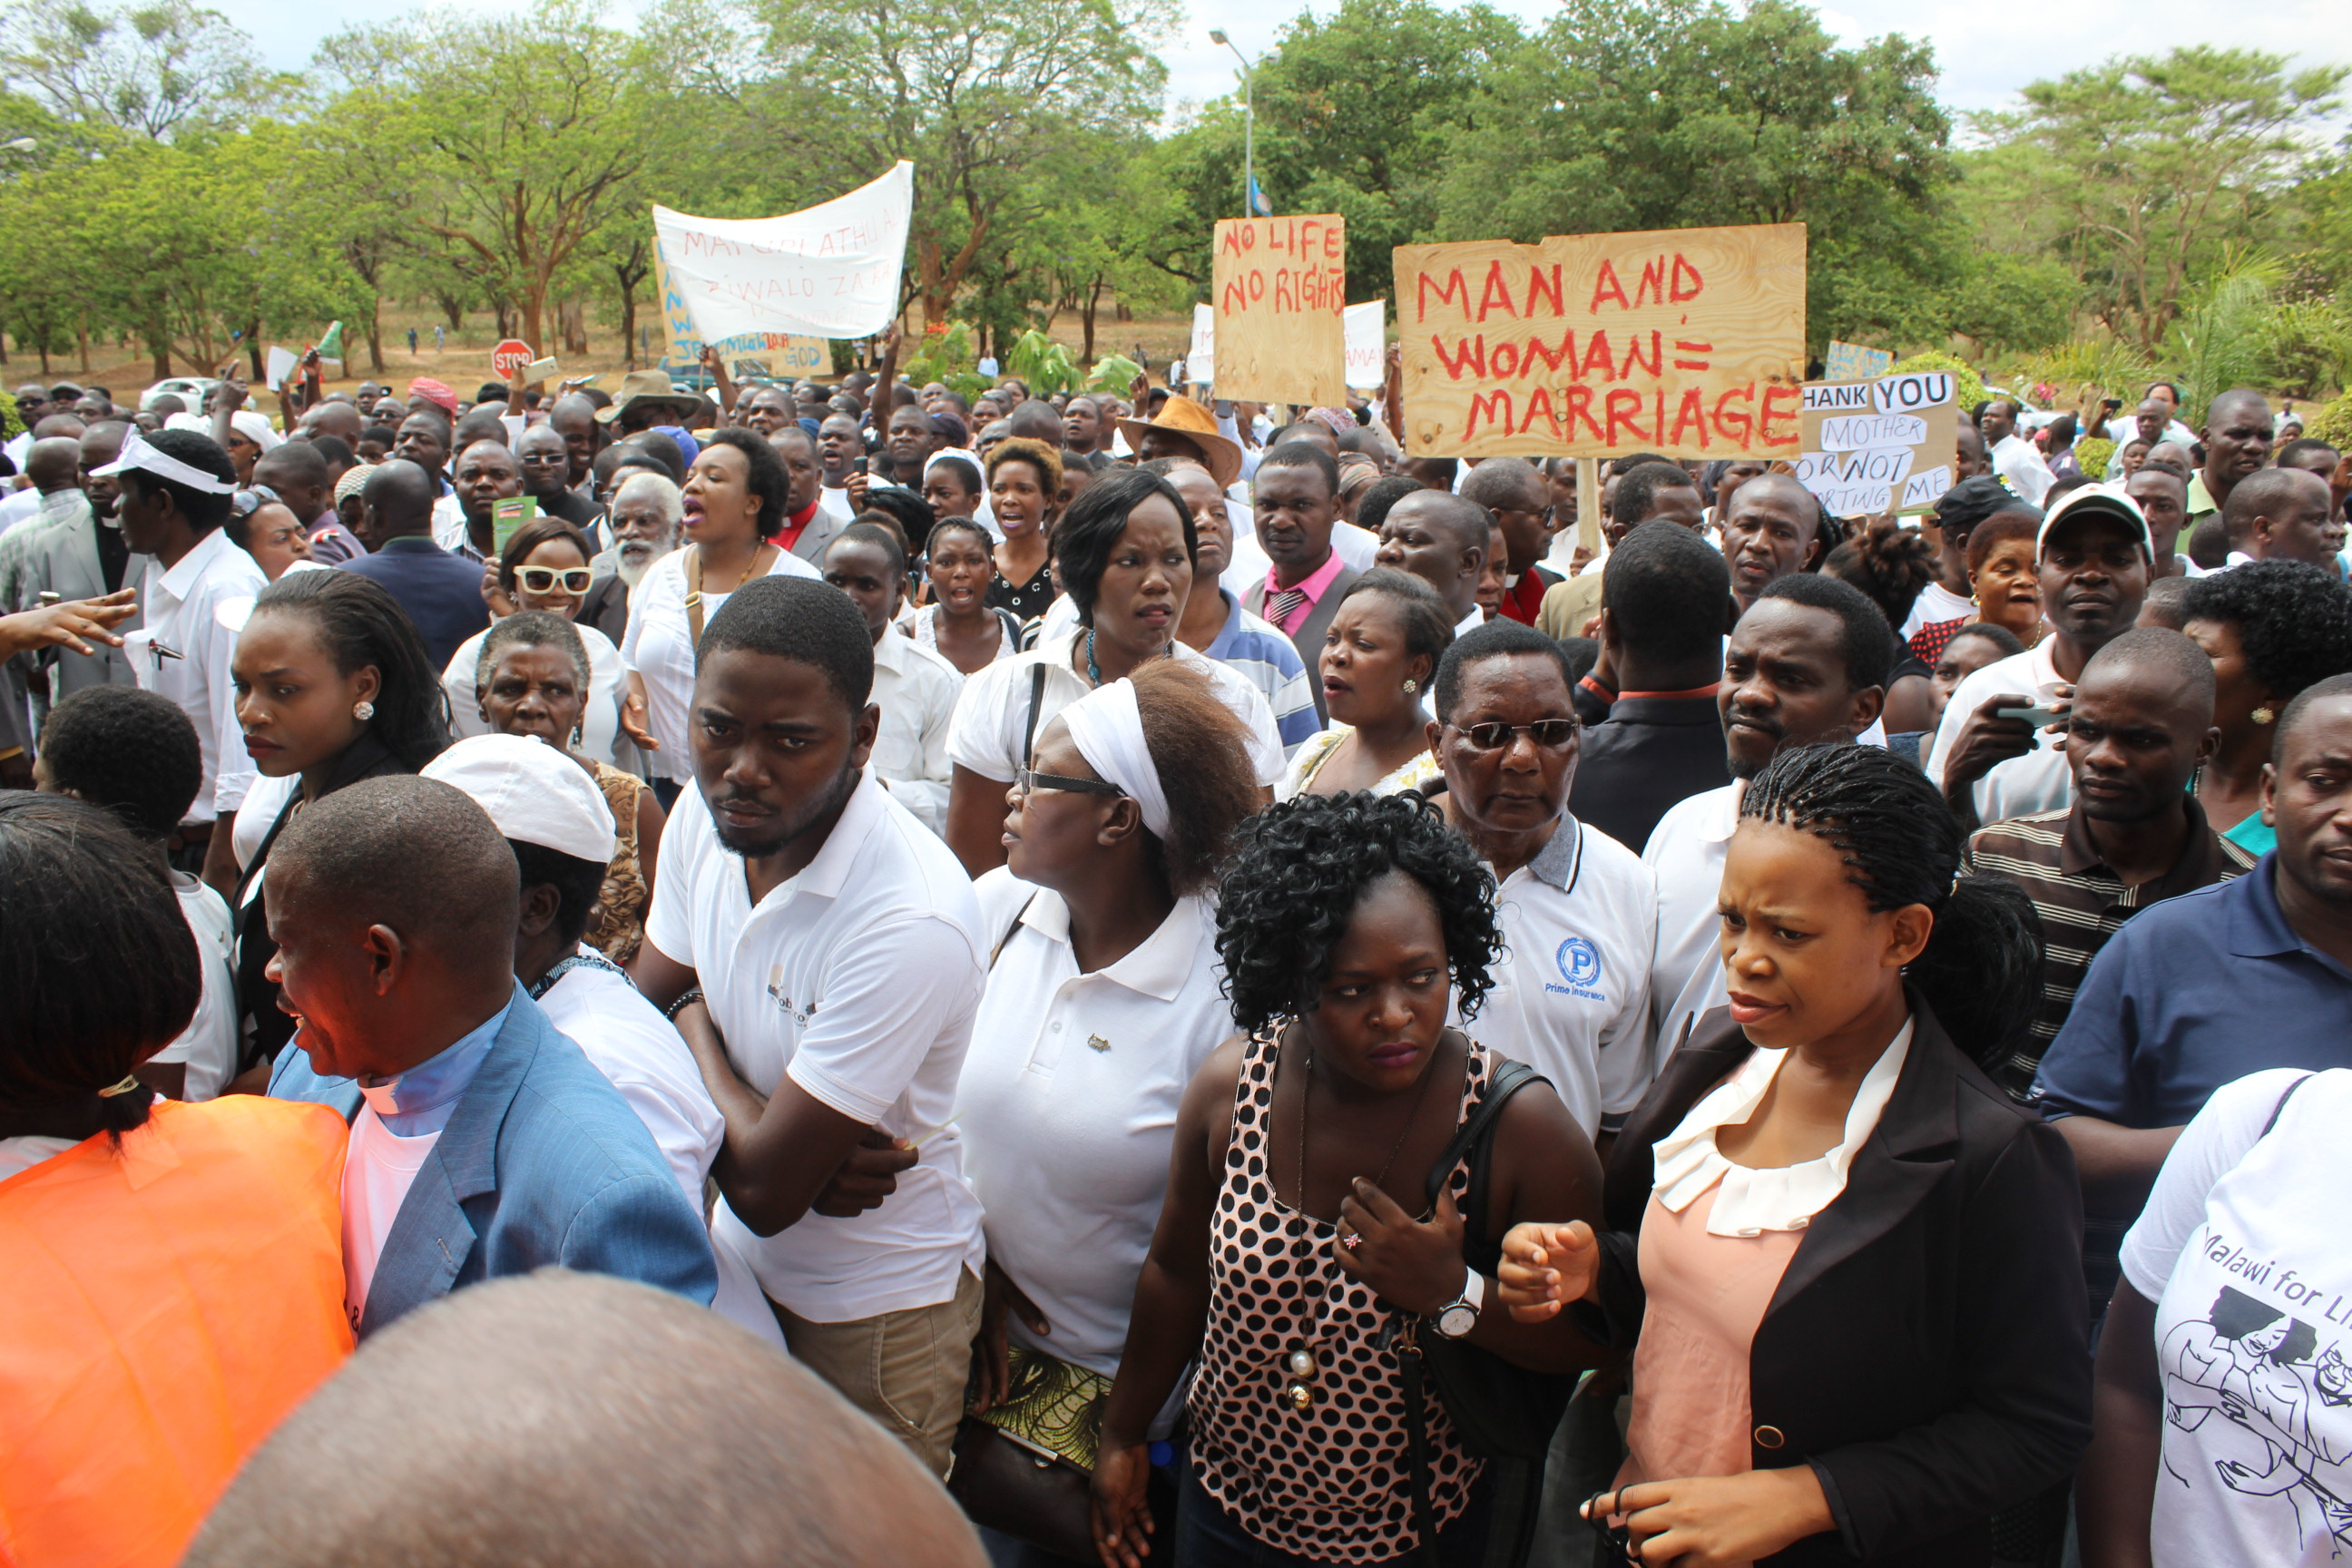 Malawi marchers on Dec. 6 focused primarily on abortion, but objected to same-sex marriage too. (Photo courtesy of ECM)